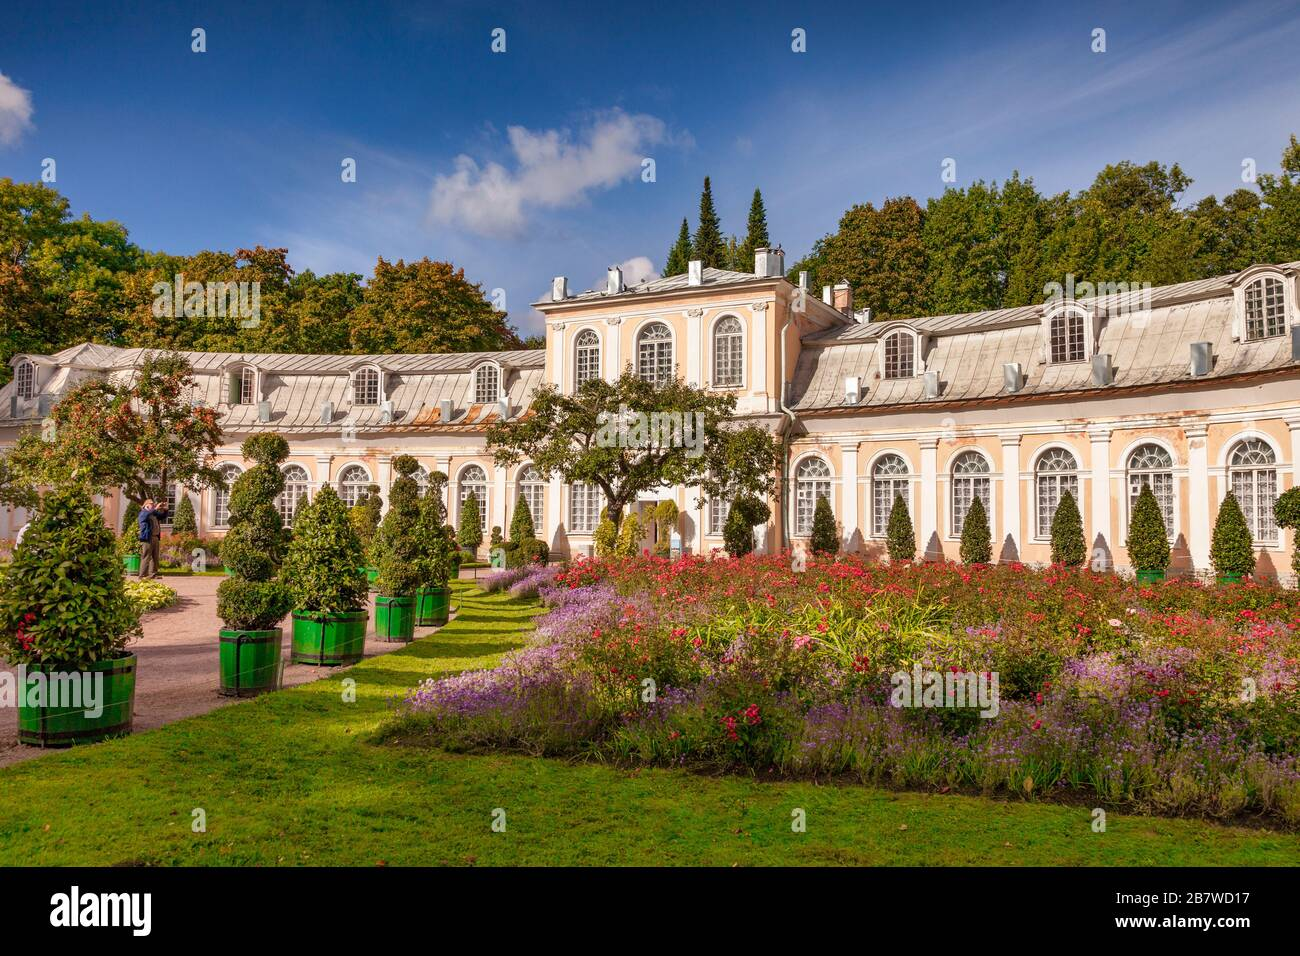 18 September 2018: St Petersburg, Russia - Orangery building and gardens. Stock Photo